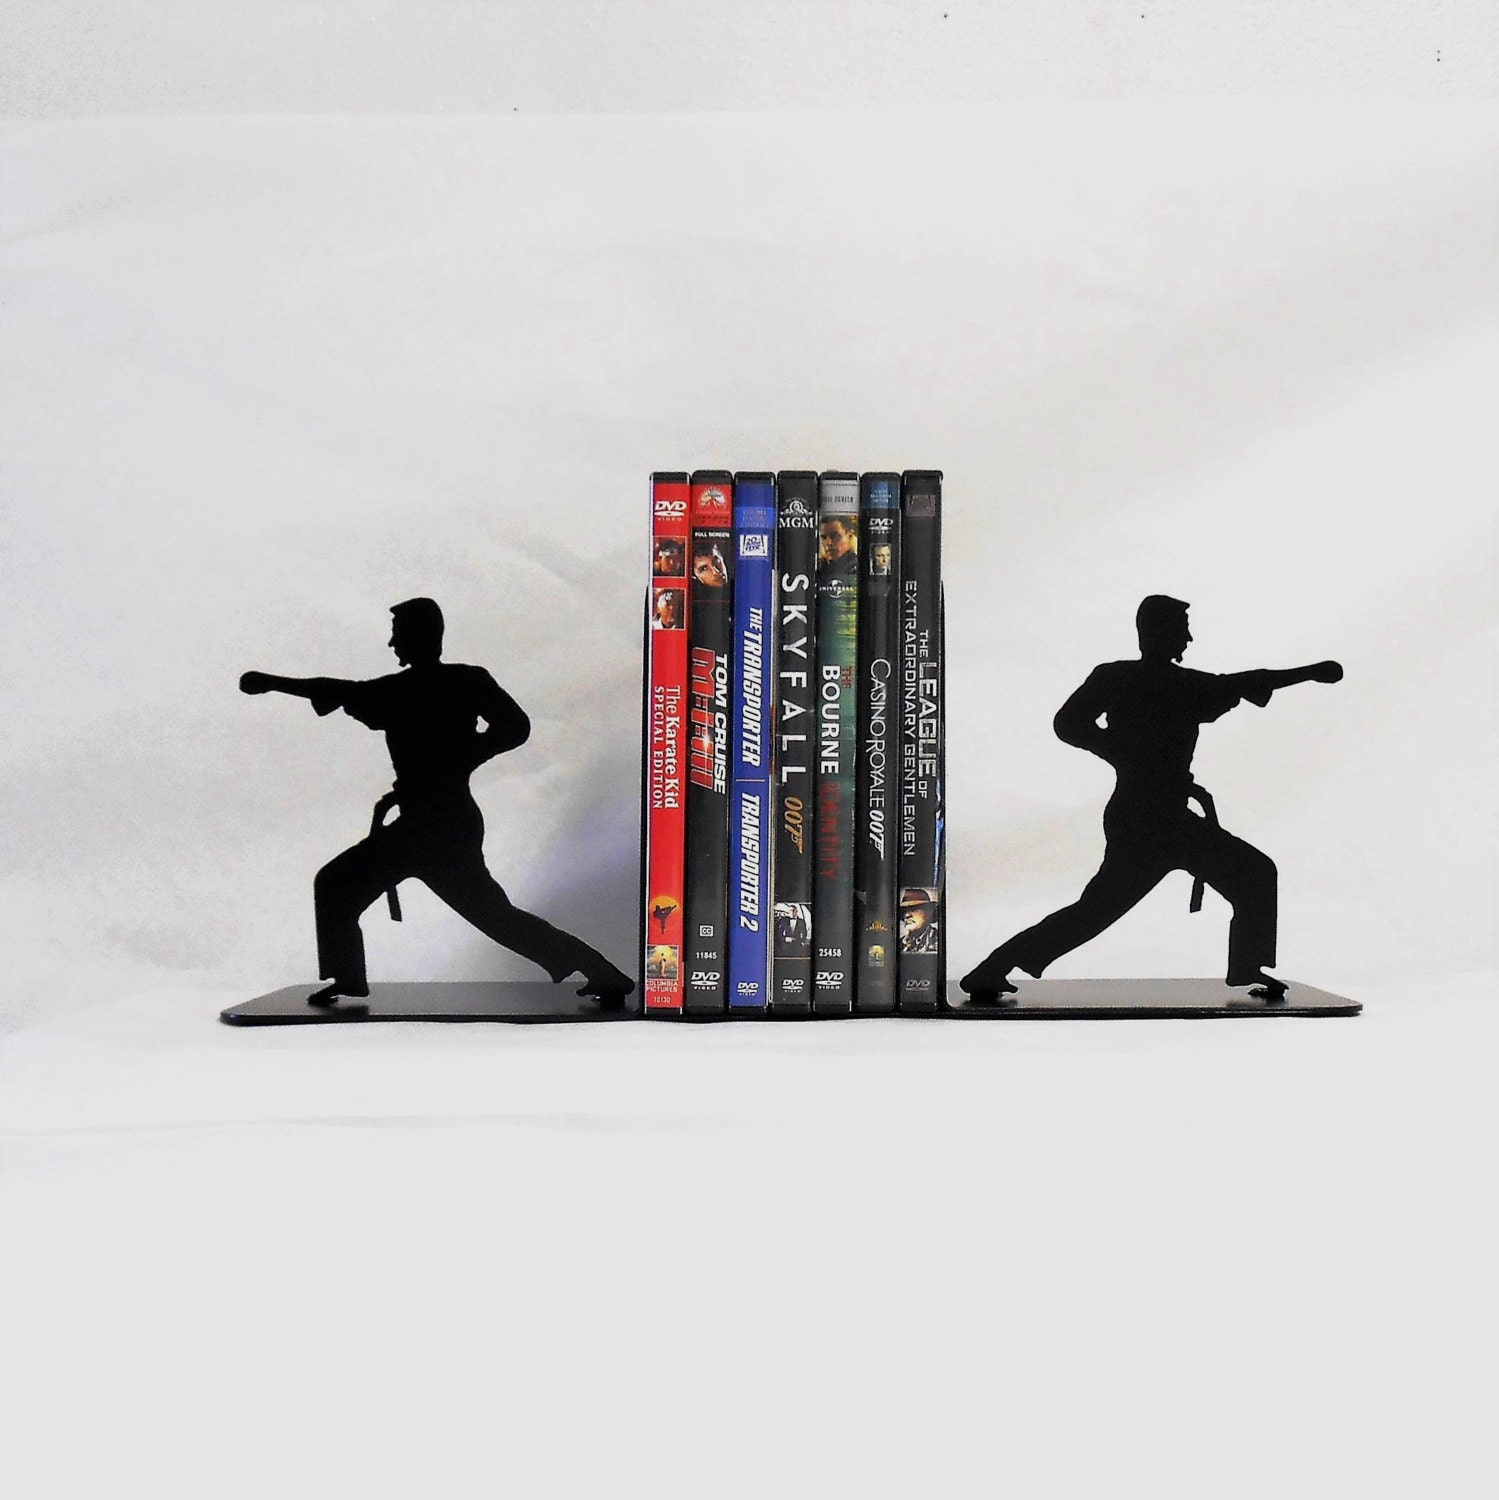 Karate, Martial Arts, Taekwondo, Metal Art Bookends, Hand Strike, Punch